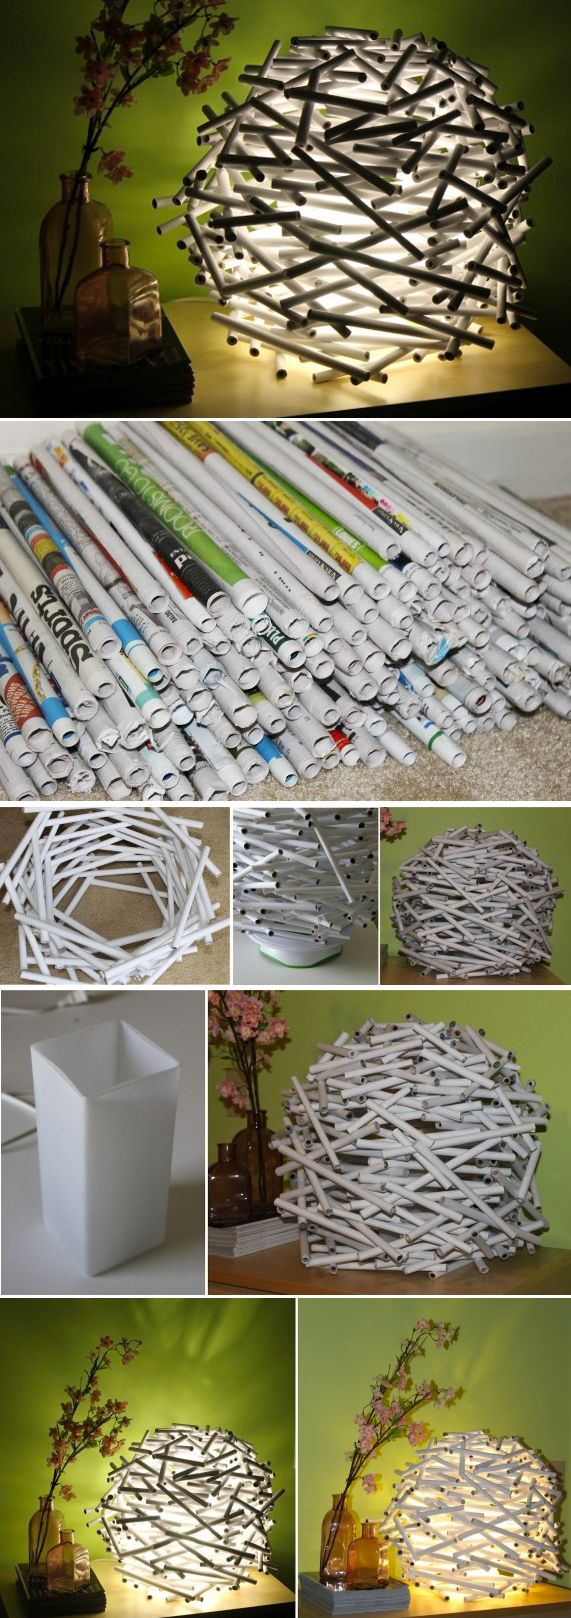 {DIY} lamp style bird nest with newspaper